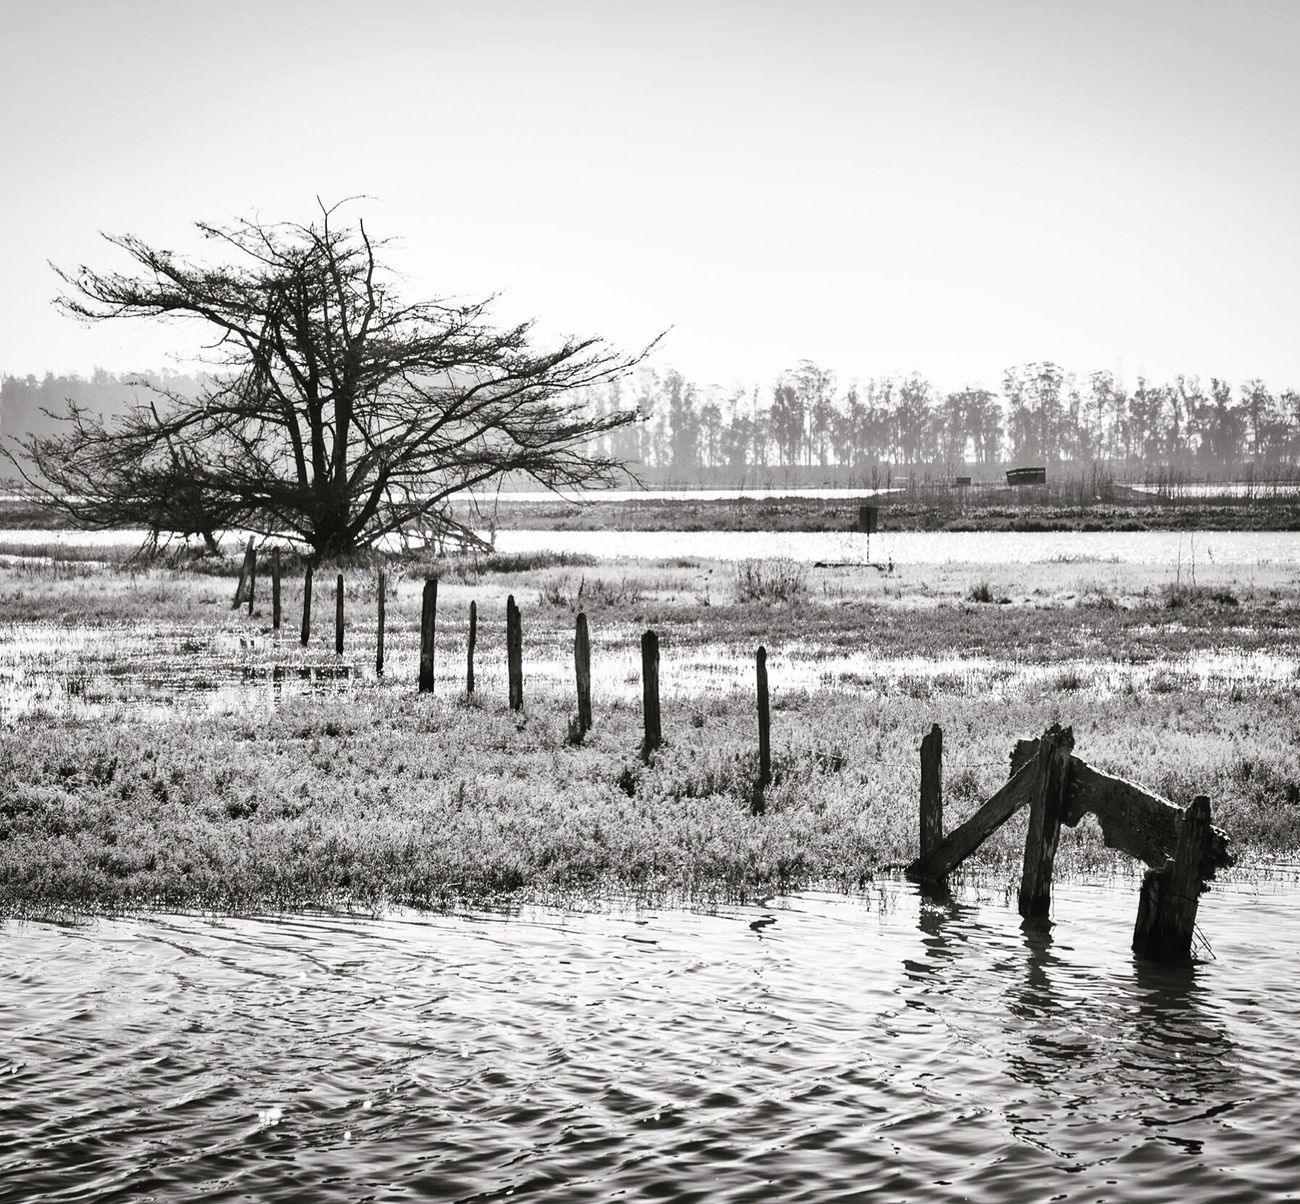 Tree Water Bare Tree Sky Day Tranquil Scene Outdoors Tranquility Nature Landscape Blackandwhite Subaru Crosstrek Monterey Bay Subaru Canon5D Canonphotography Canon Michellerobertsonphotography Beauty In Nature Fence